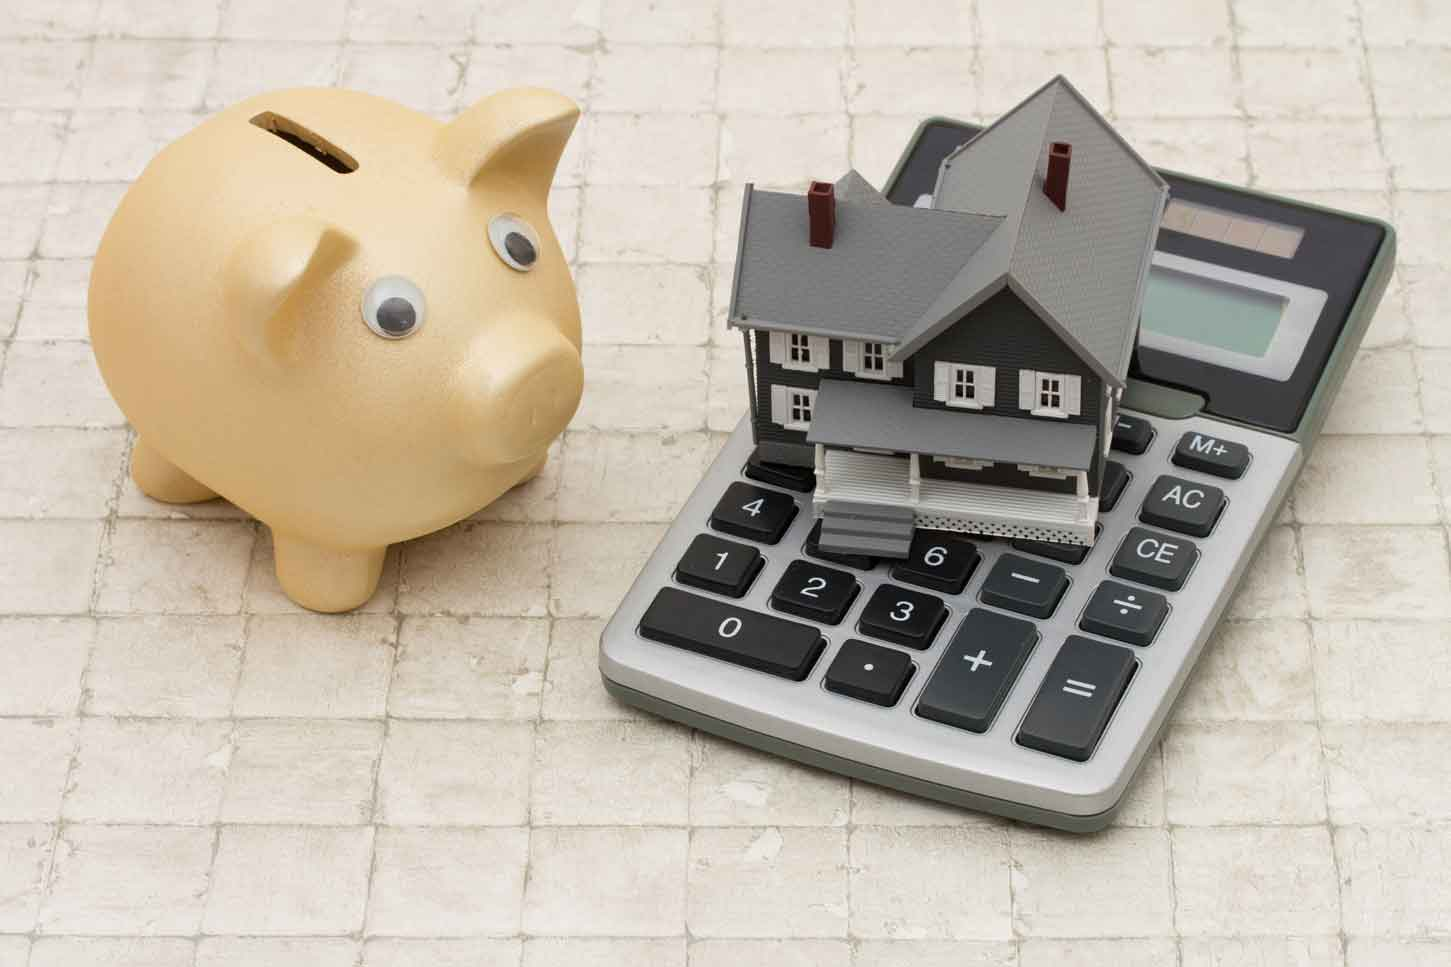 Gray house, piggy bank and calculator on stone background